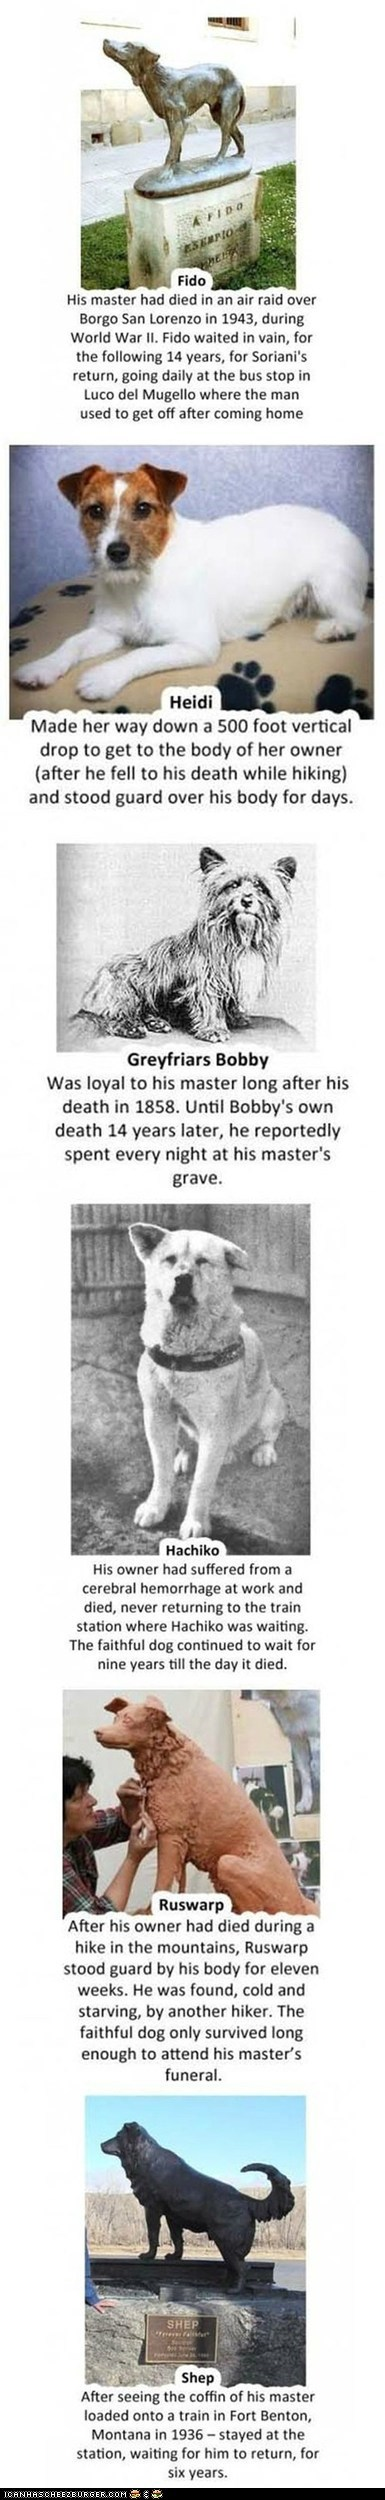 Death,dogs,inspiring,loyal,loyalty,mans-best-friend,Sad,sweet